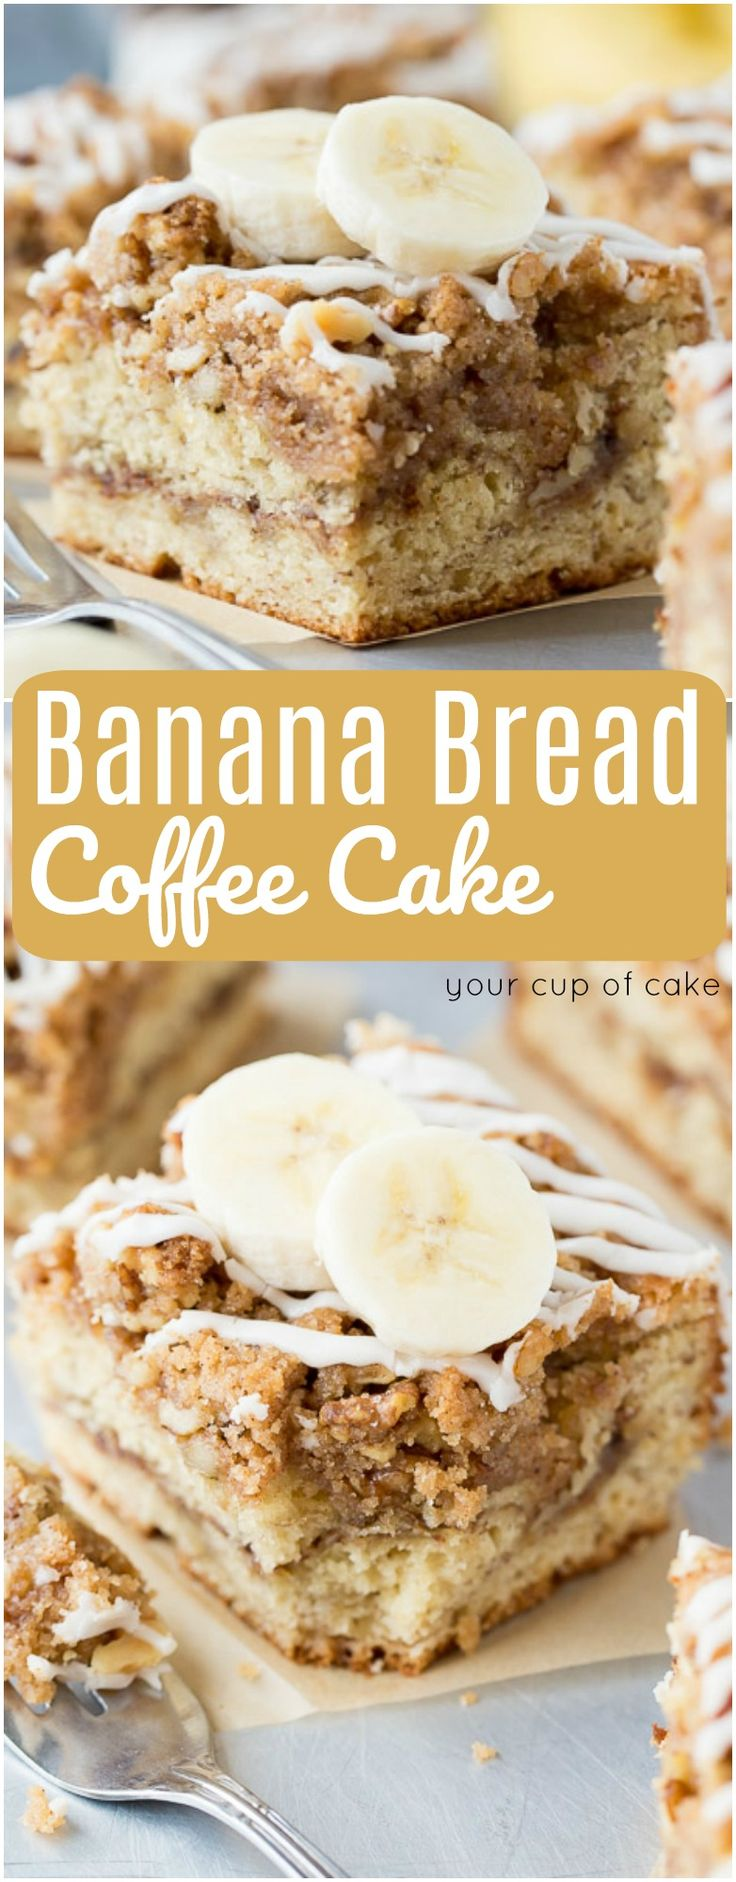 Banana Bread Coffee Cake, THE best coffee cake you'll ever eat!